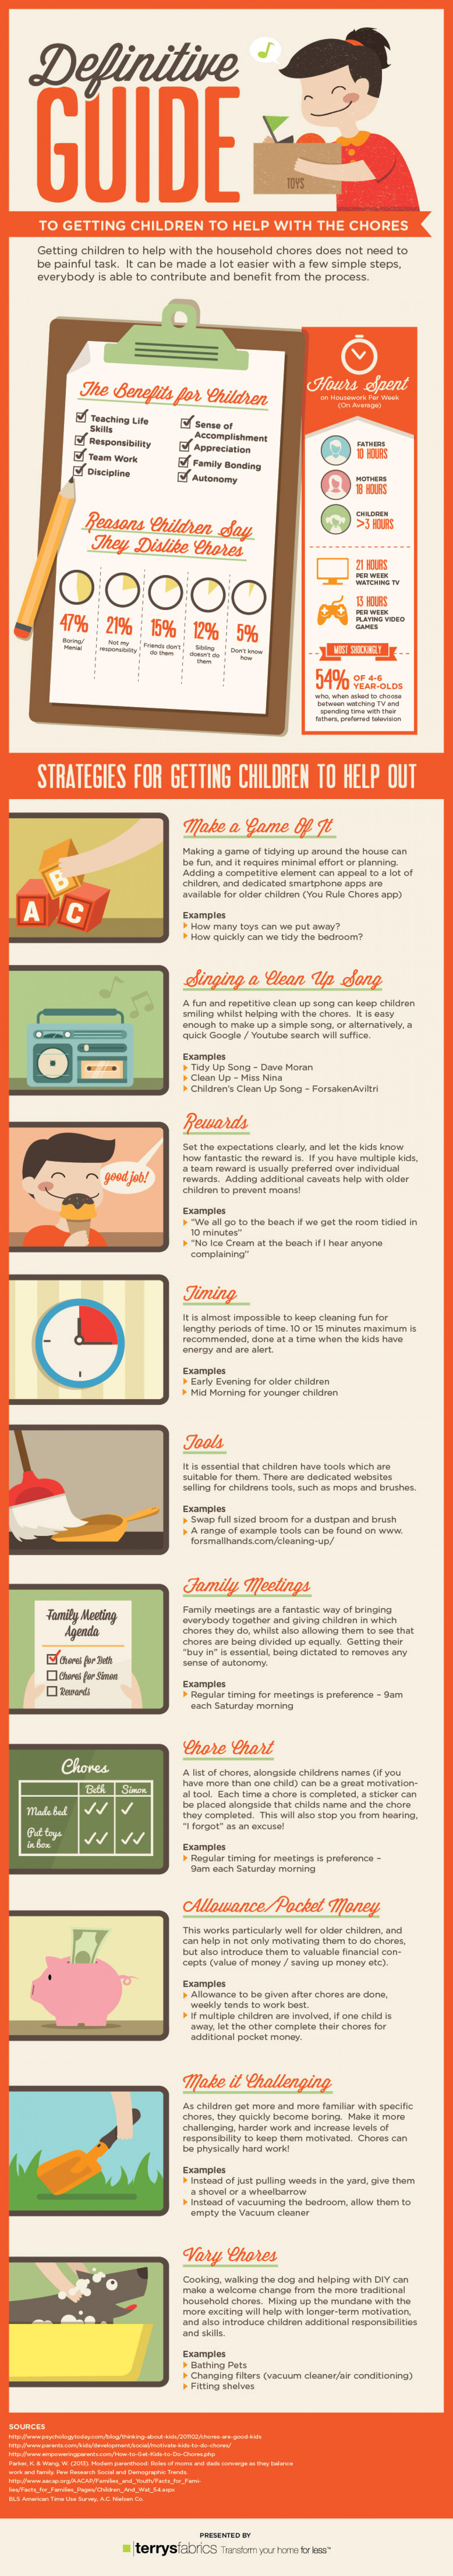 How to Get Children to Help With the Chores Infographic